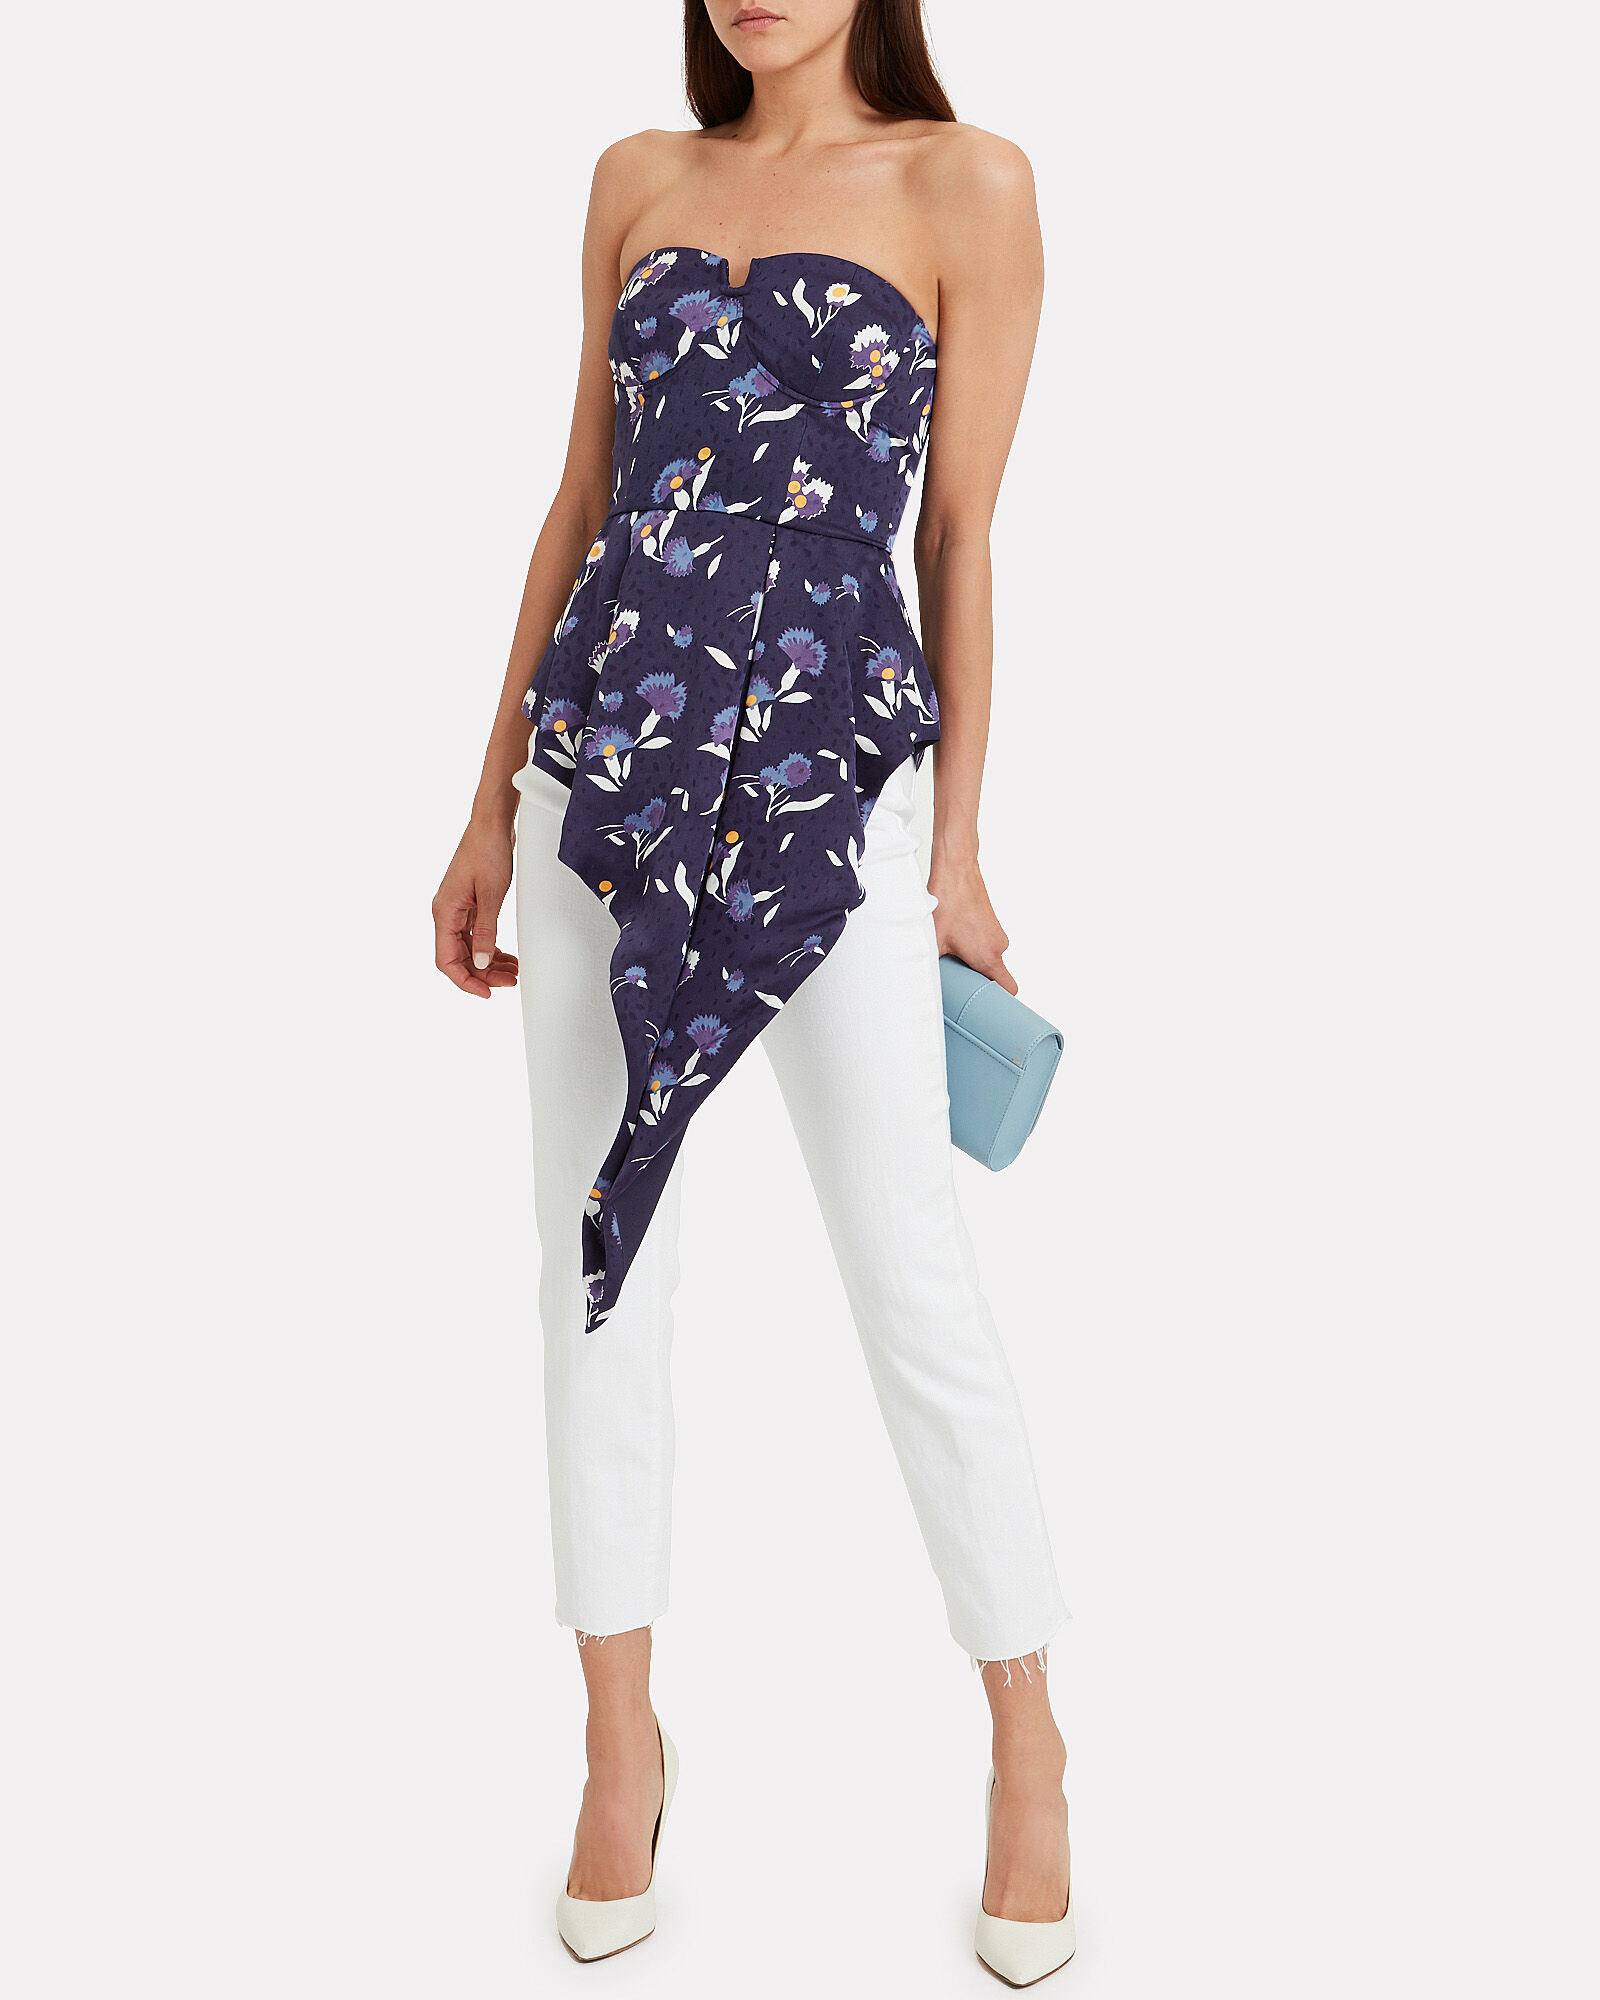 Strapless Printed Bustier Top - White House Black Market |Printed Bustier Top